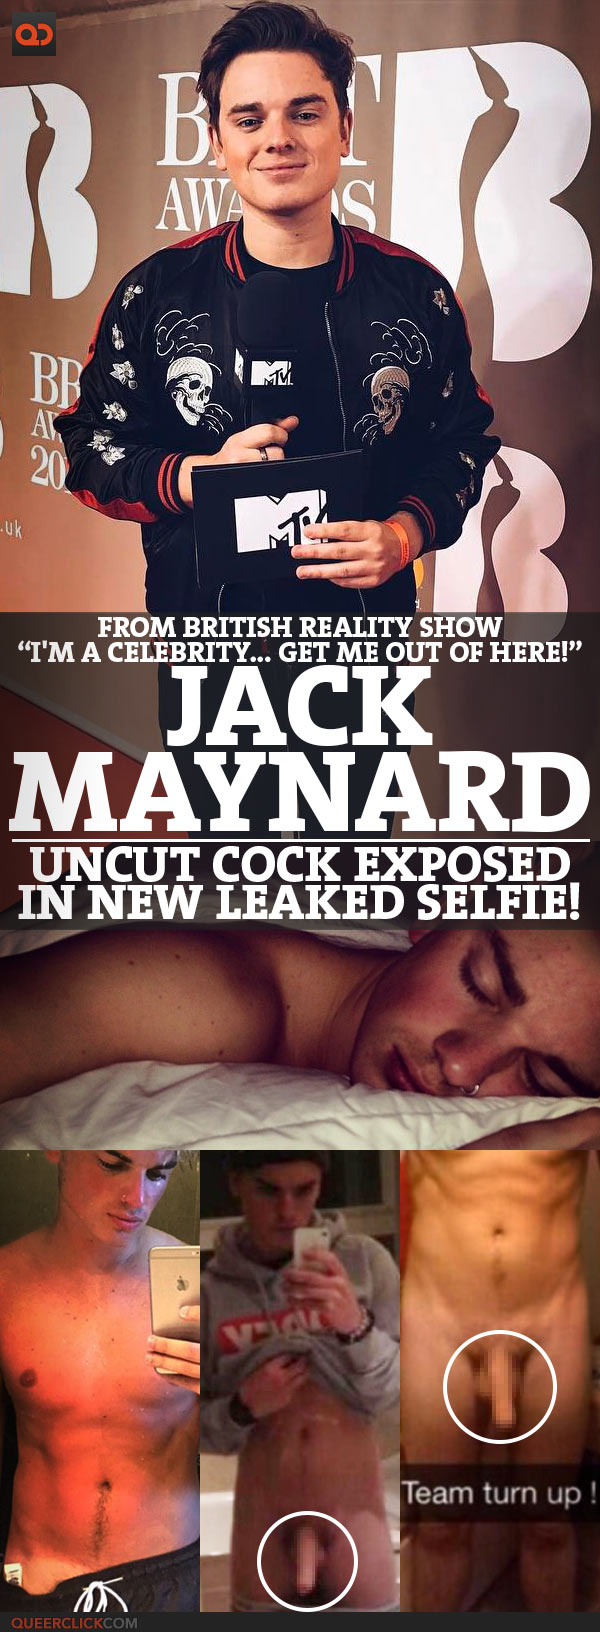 """Jack Maynard, From British Reality Show """"I'm A Celebrity… Get Me Out Of Here!"""", Uncut Cock Exposed In Leaked Selfie!"""